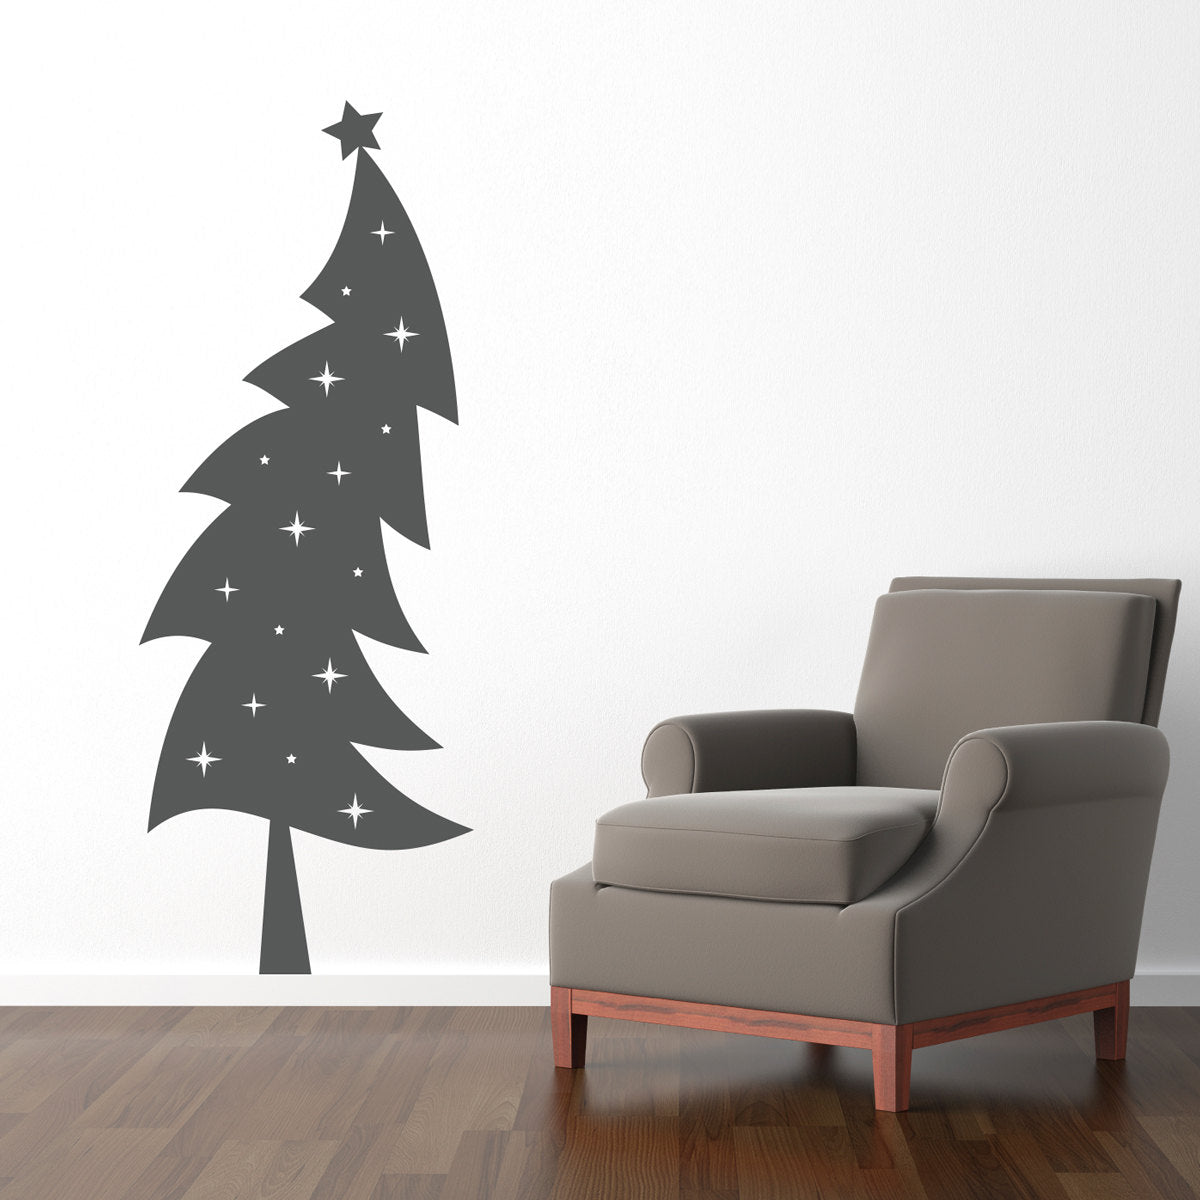 christmas tree wall decal holiday wall decor christmas wall art stephen edward graphics - Christmas Wall Art Decor